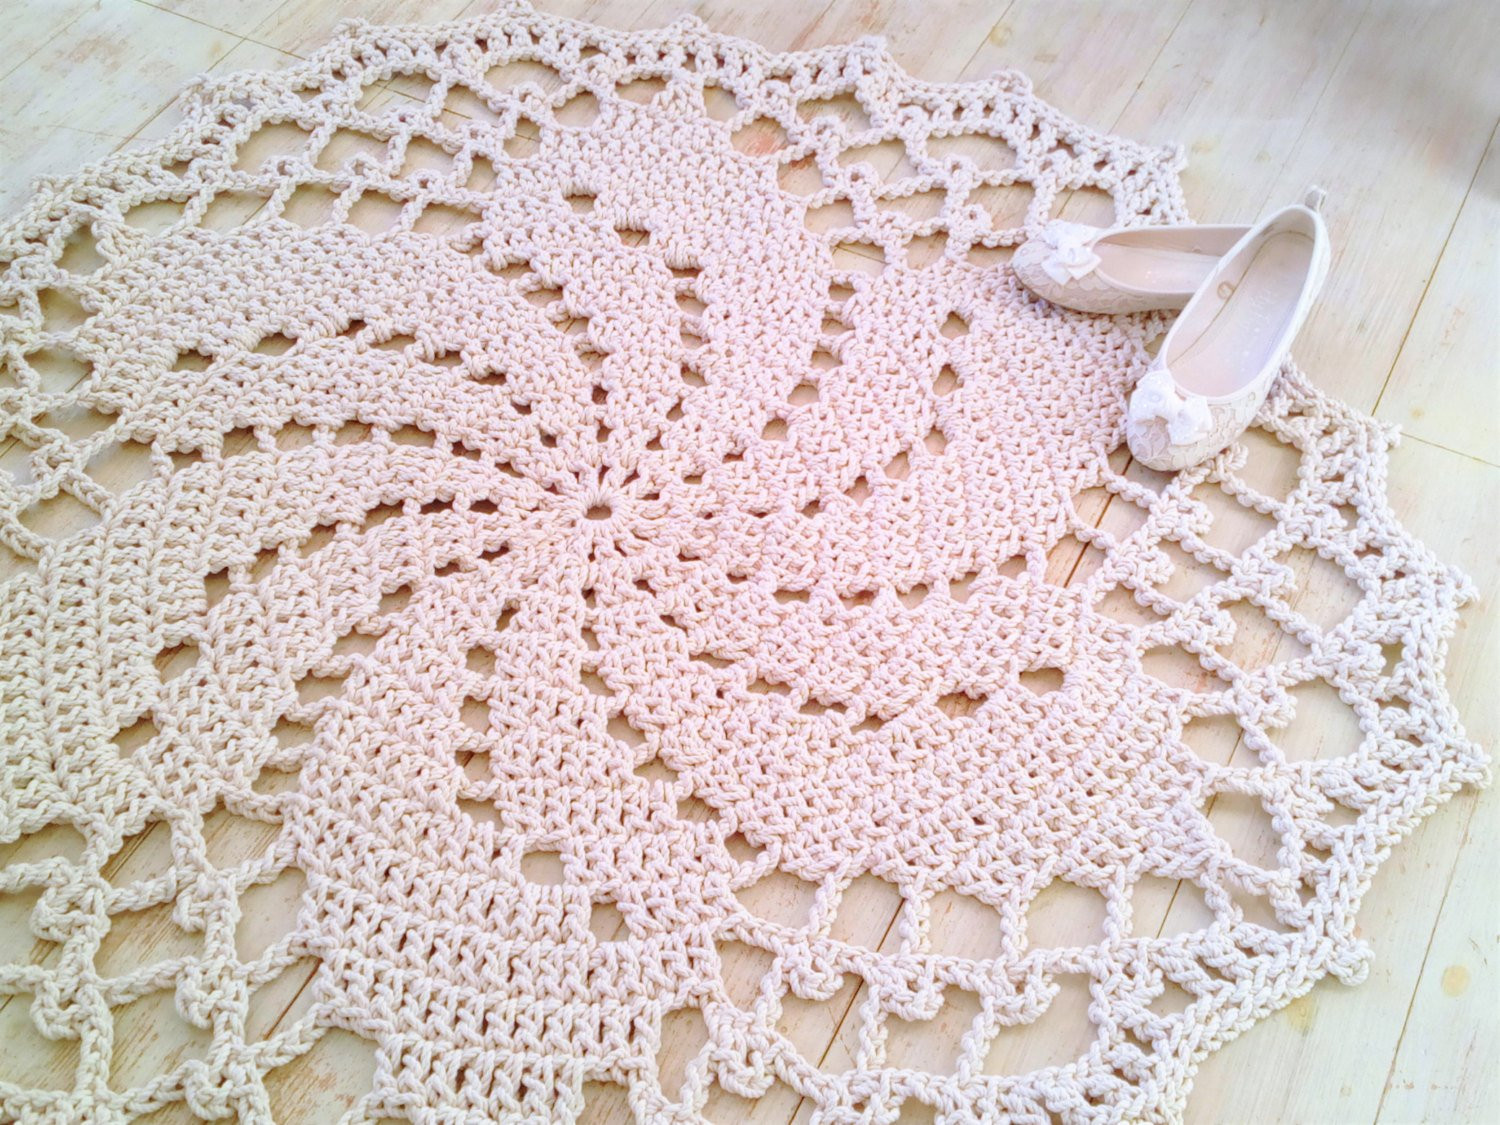 Crochet Rope Rug Beautiful Crochet Rope Cord Giant Doily Rug Cotton Round Bedroom Of Luxury 46 Models Crochet Rope Rug